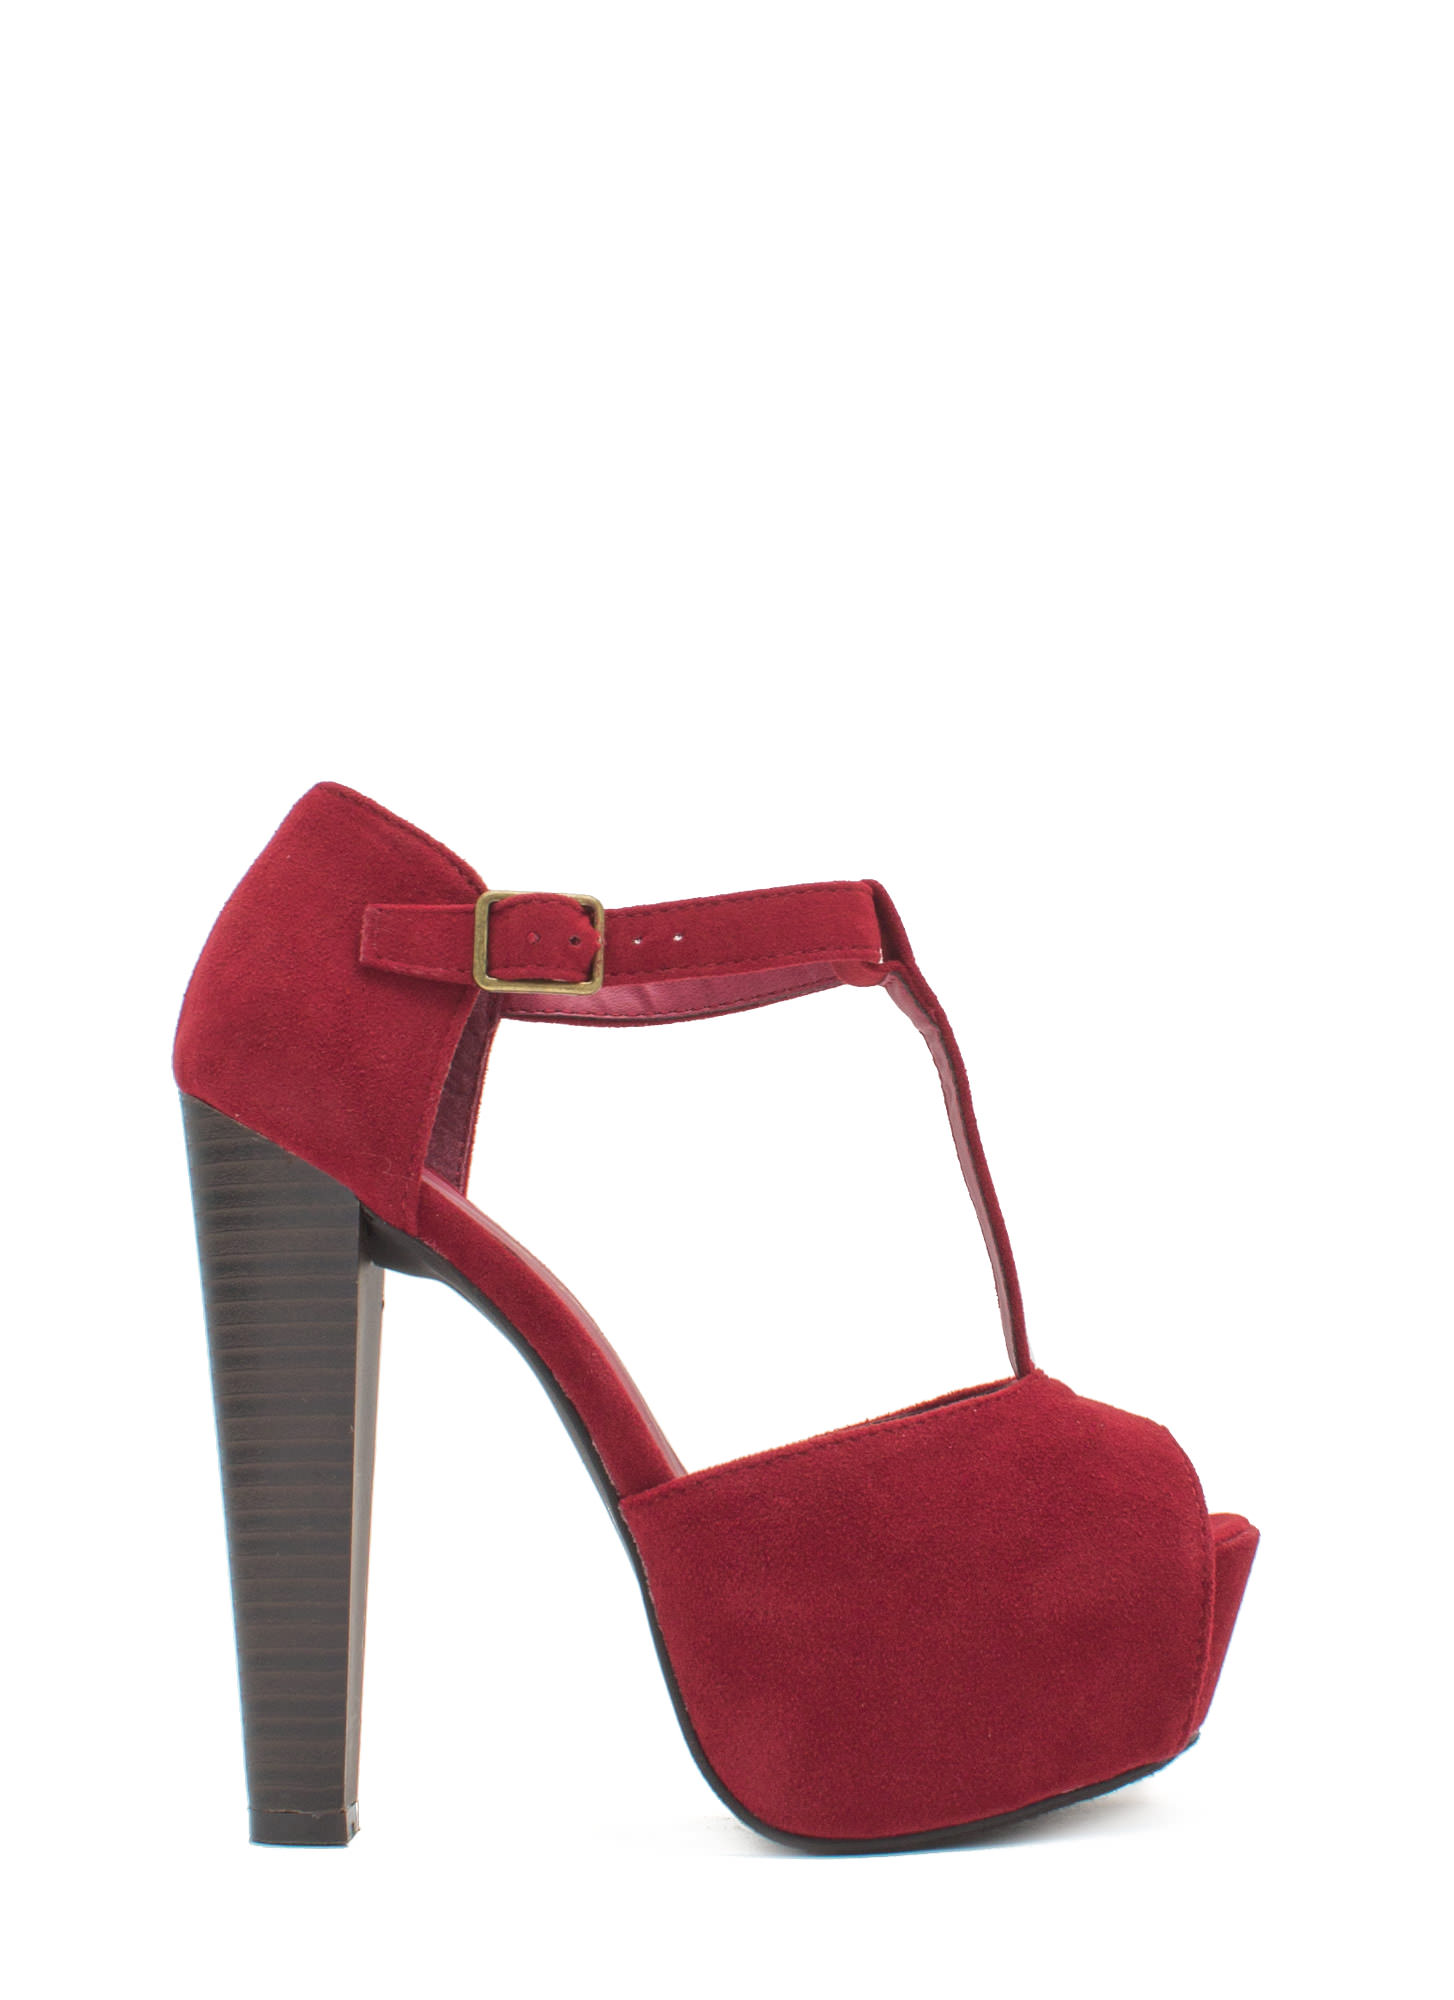 To The T-Strap Chunky Peep-Toe Heels RED